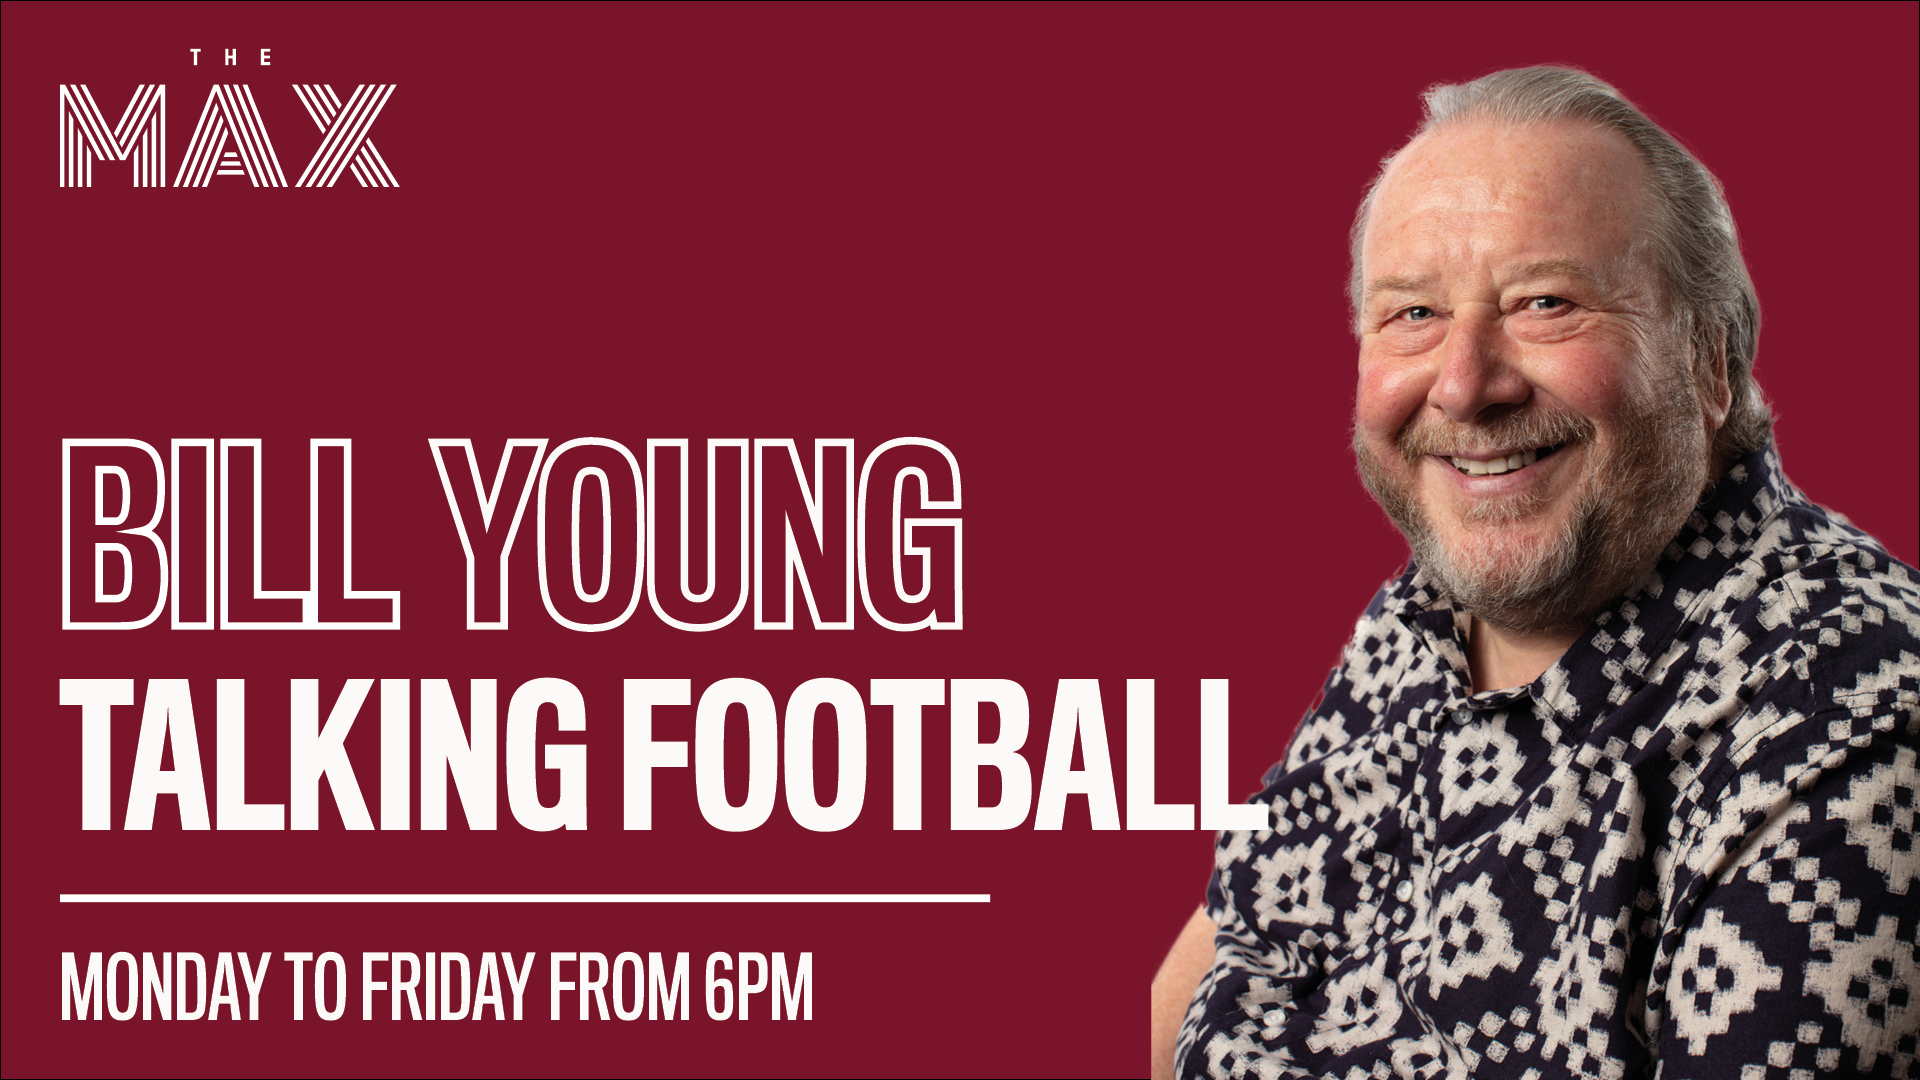 Talking Football Podcast w/Bill Young - Episode 1